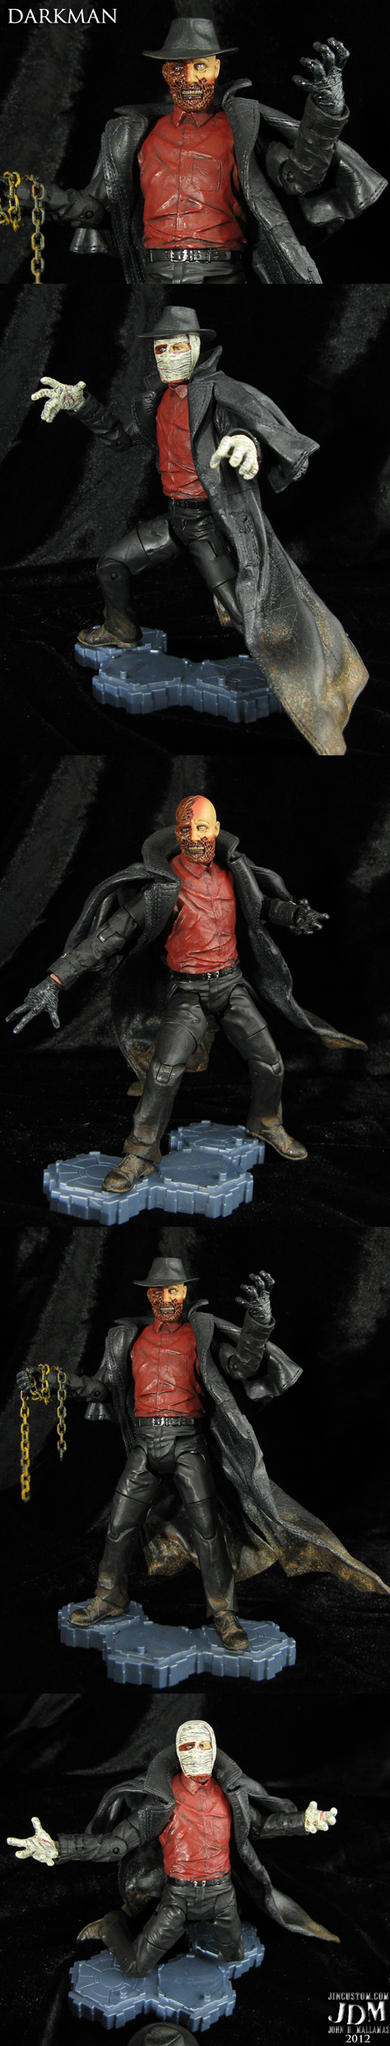 Custom Darkmanm Vers 3.0 action figure by Jin-Saotome